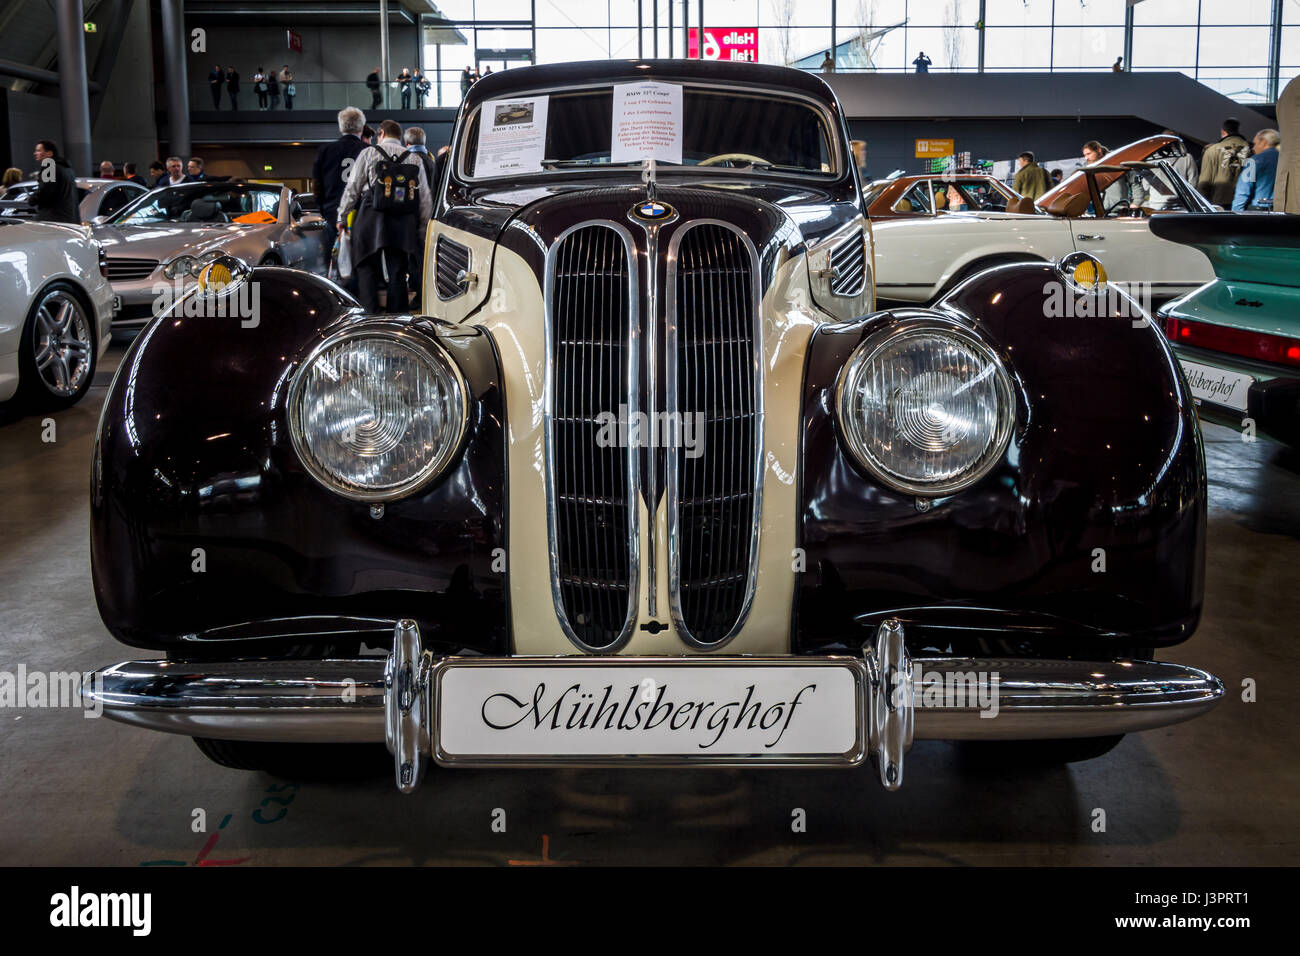 STUTTGART, GERMANY - MARCH 03, 2017: Grand tourer car BMW 327 Coupe, 1950. Europe's greatest classic car exhibition - Stock Image